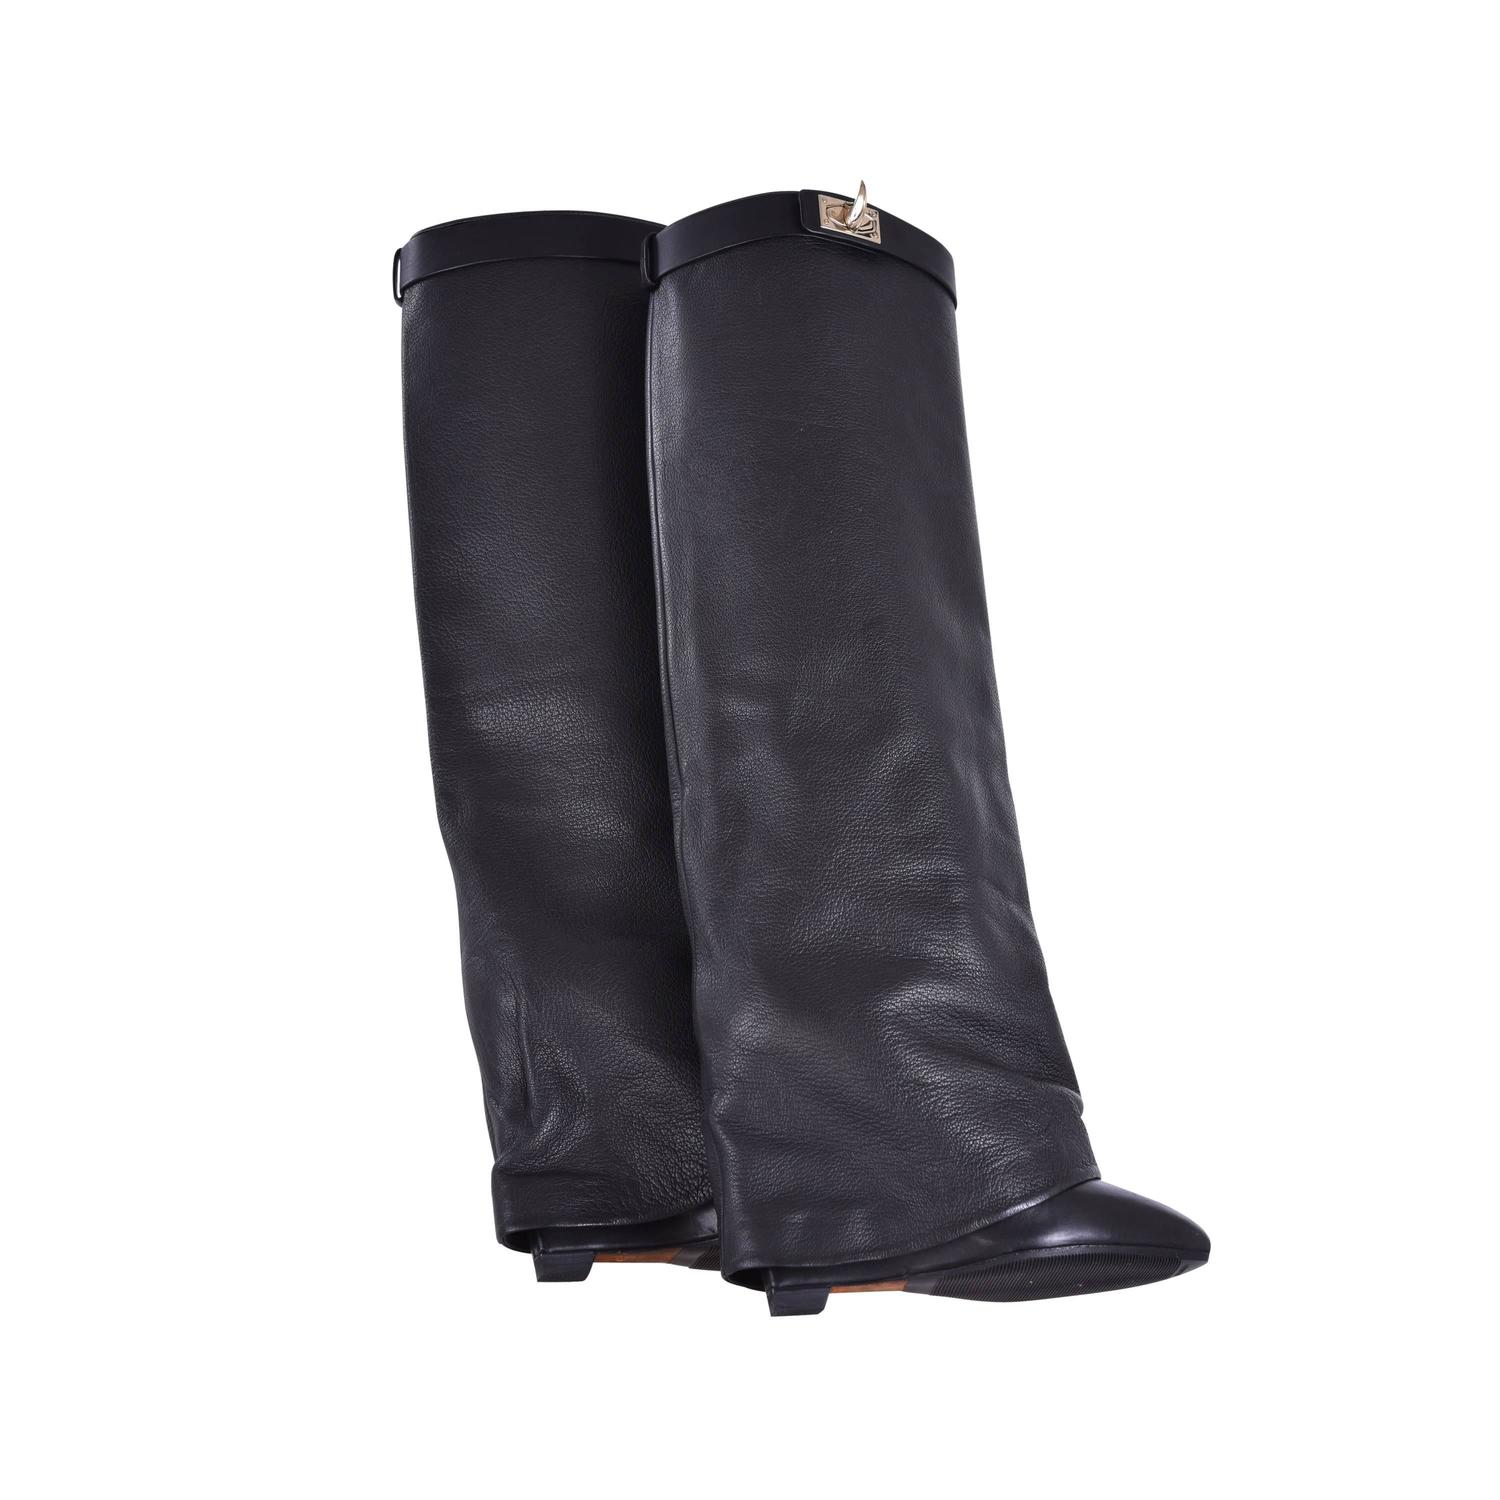 givenchy shark lock leather boots 2k janefinds at 1stdibs